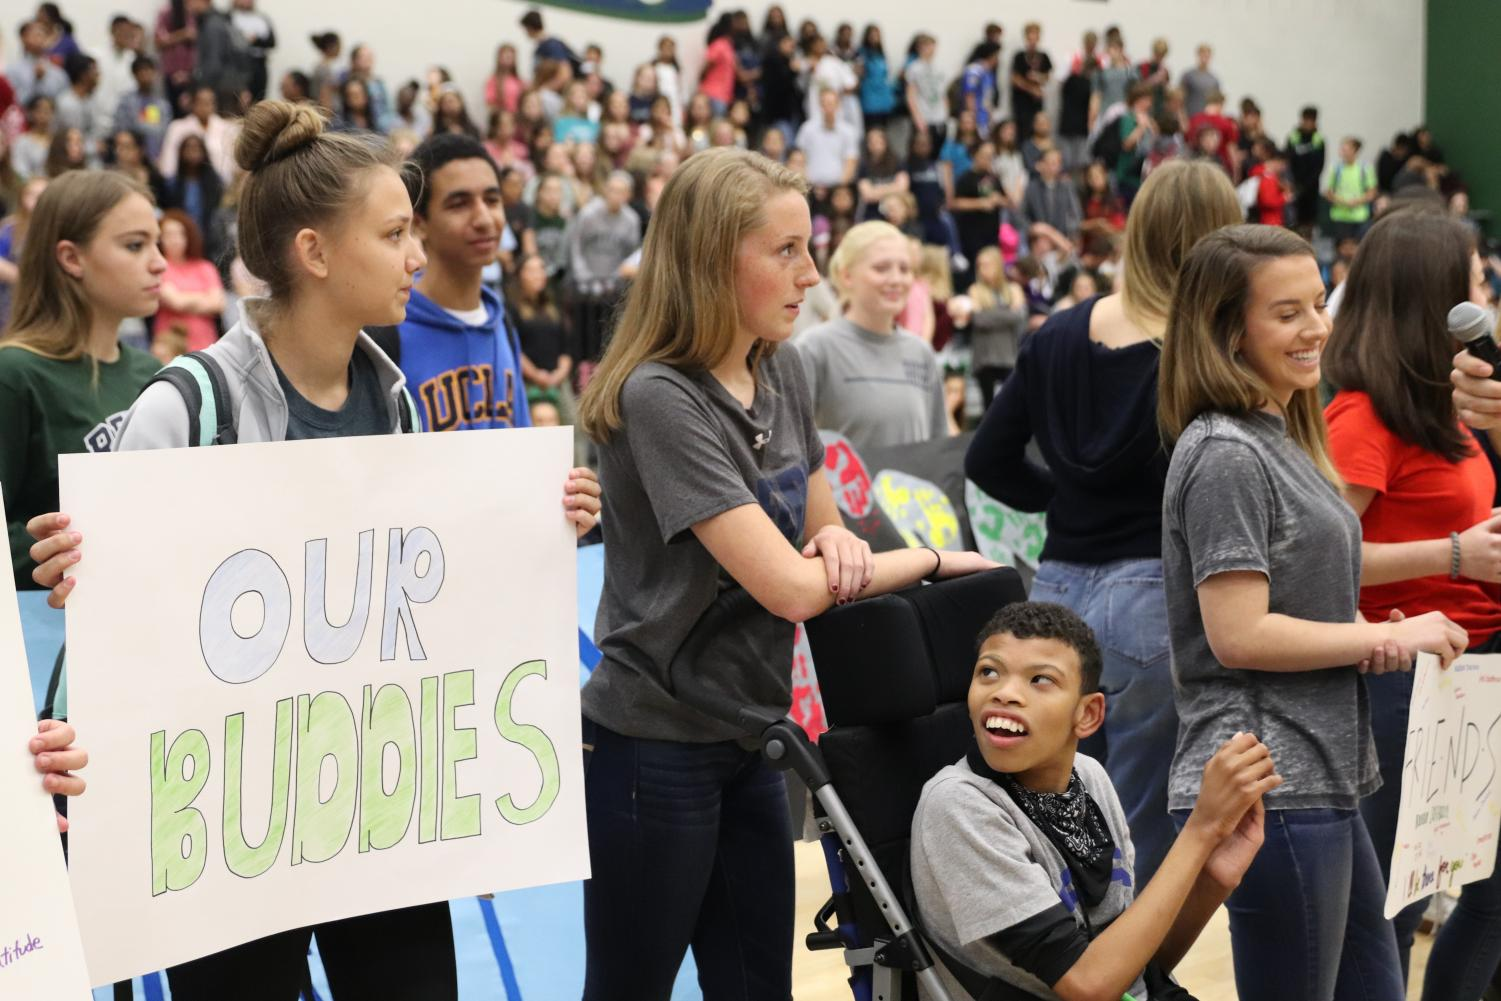 Senior Victoria Tamney and junior Grace Jensen with freshman Dominic Frezza tell the crowd what Best Buddies is thankful for at the Playoff pep rally, Nov. 17.